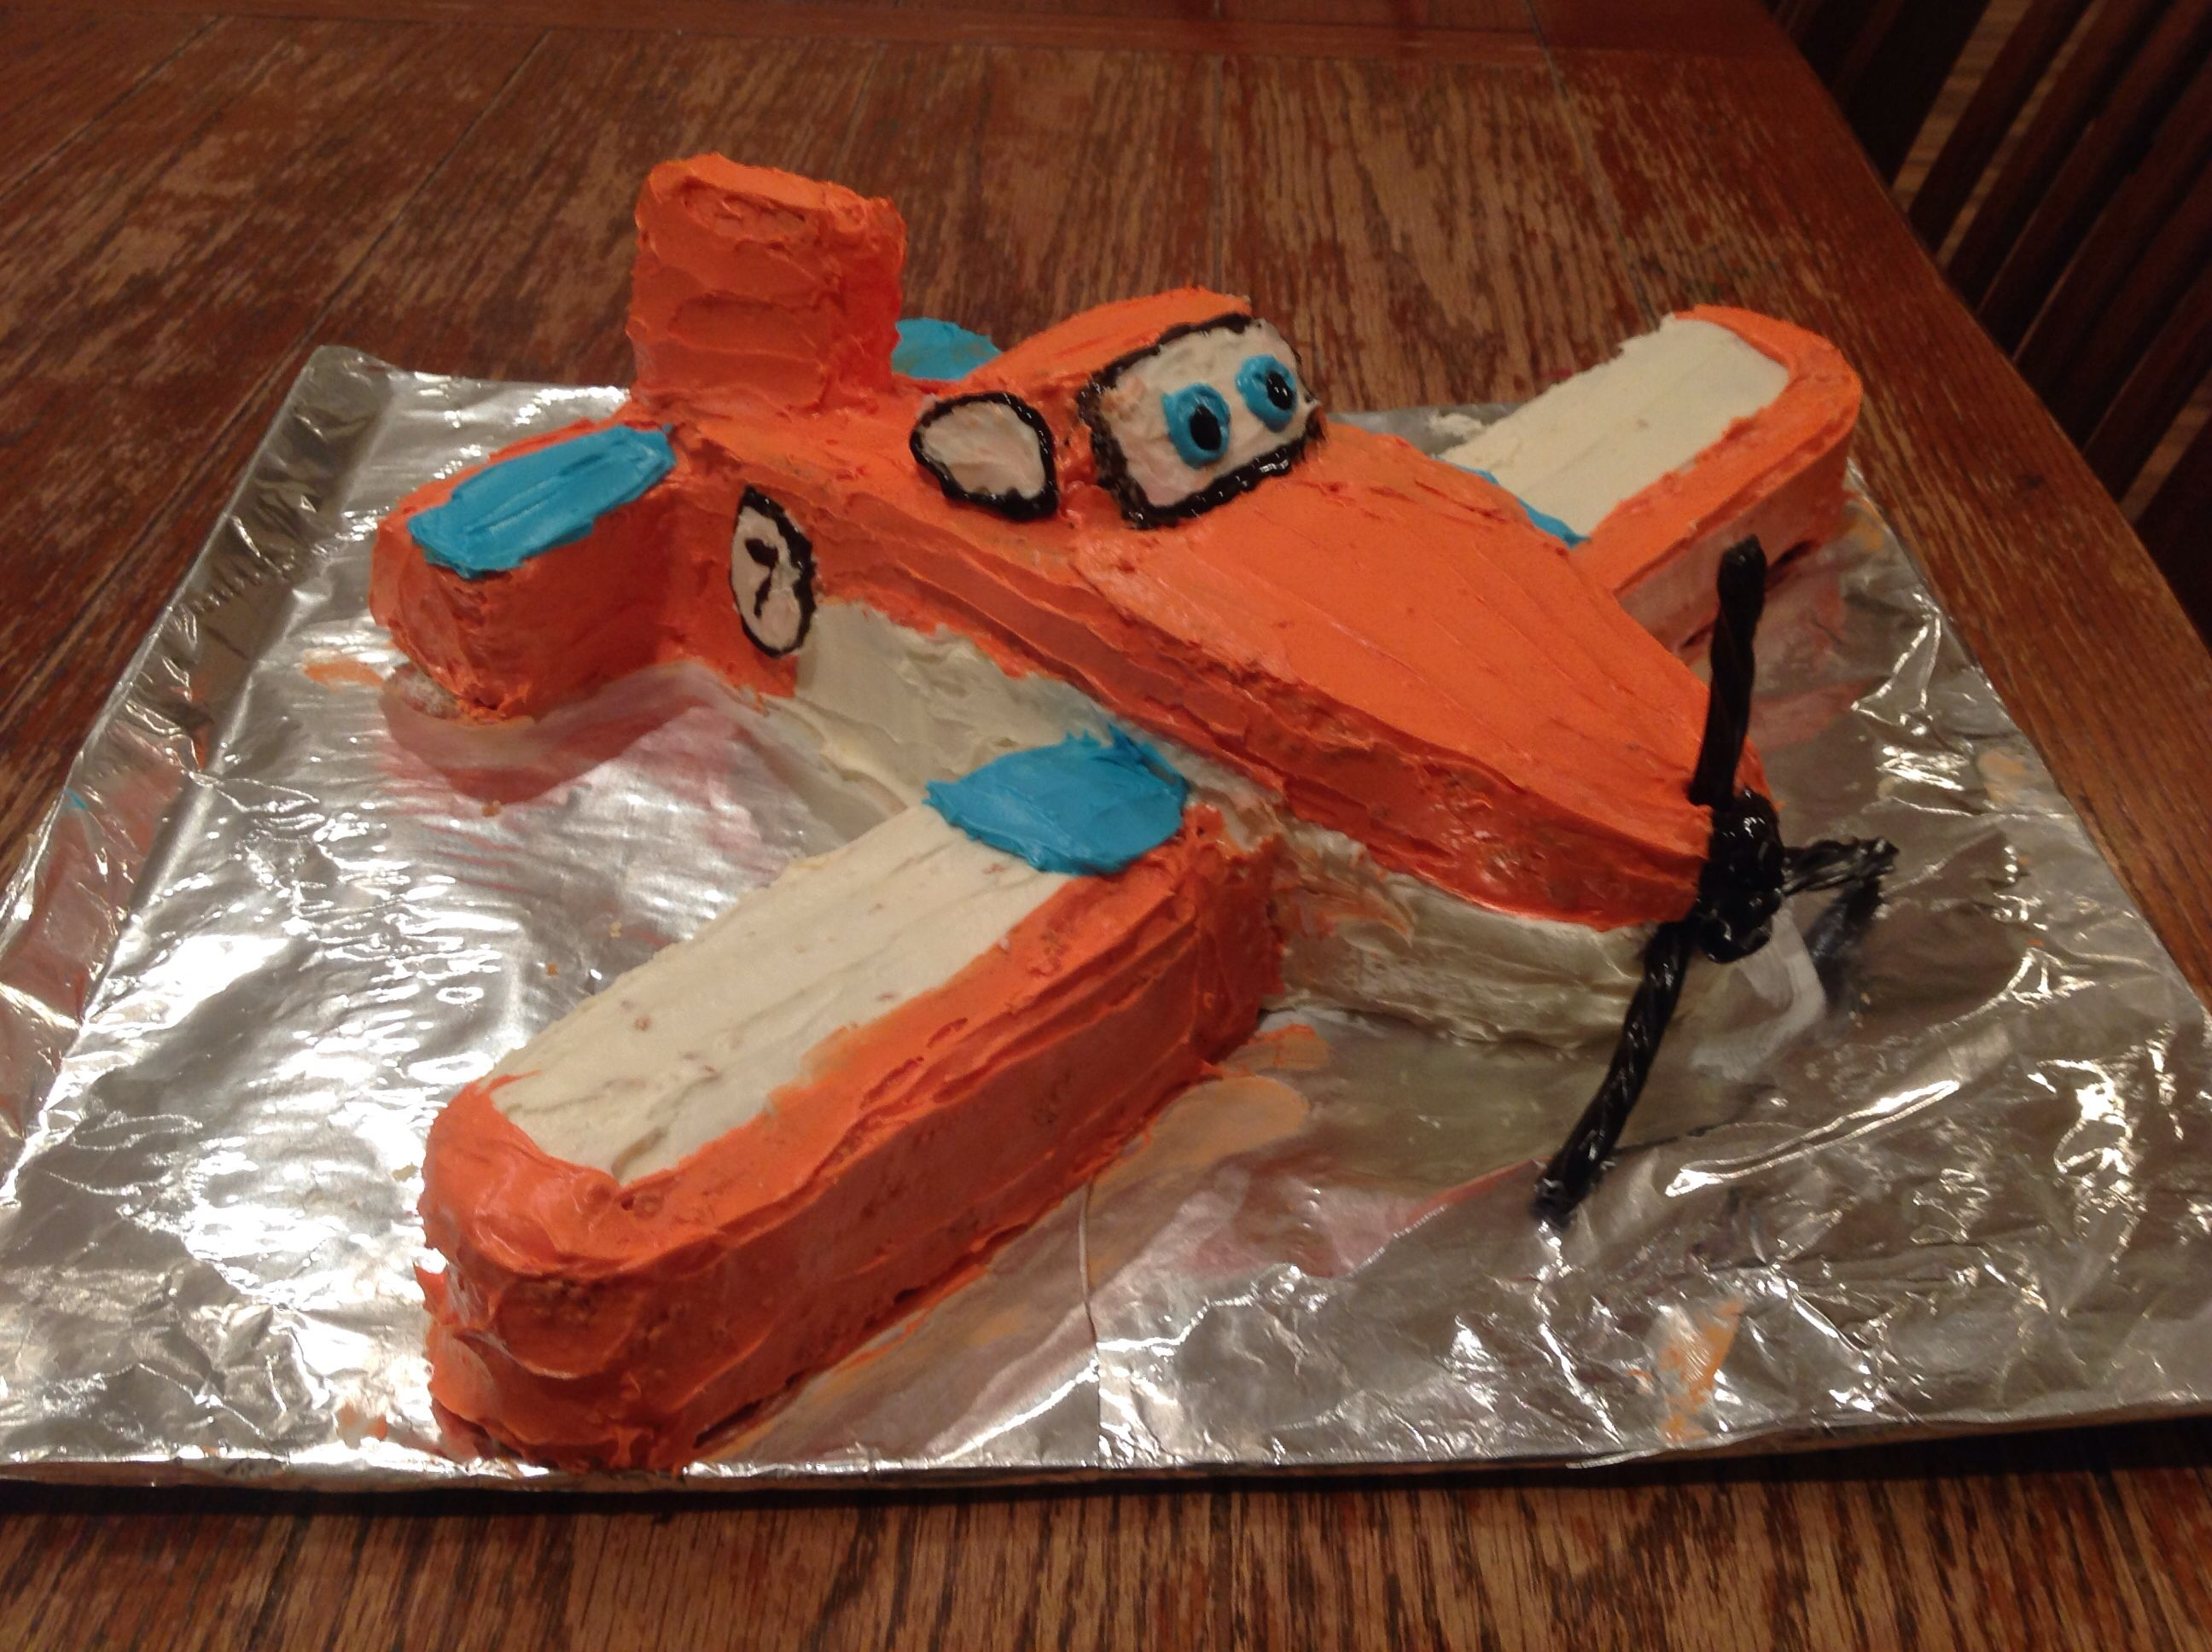 Dusty Crophopper Cake From Planes